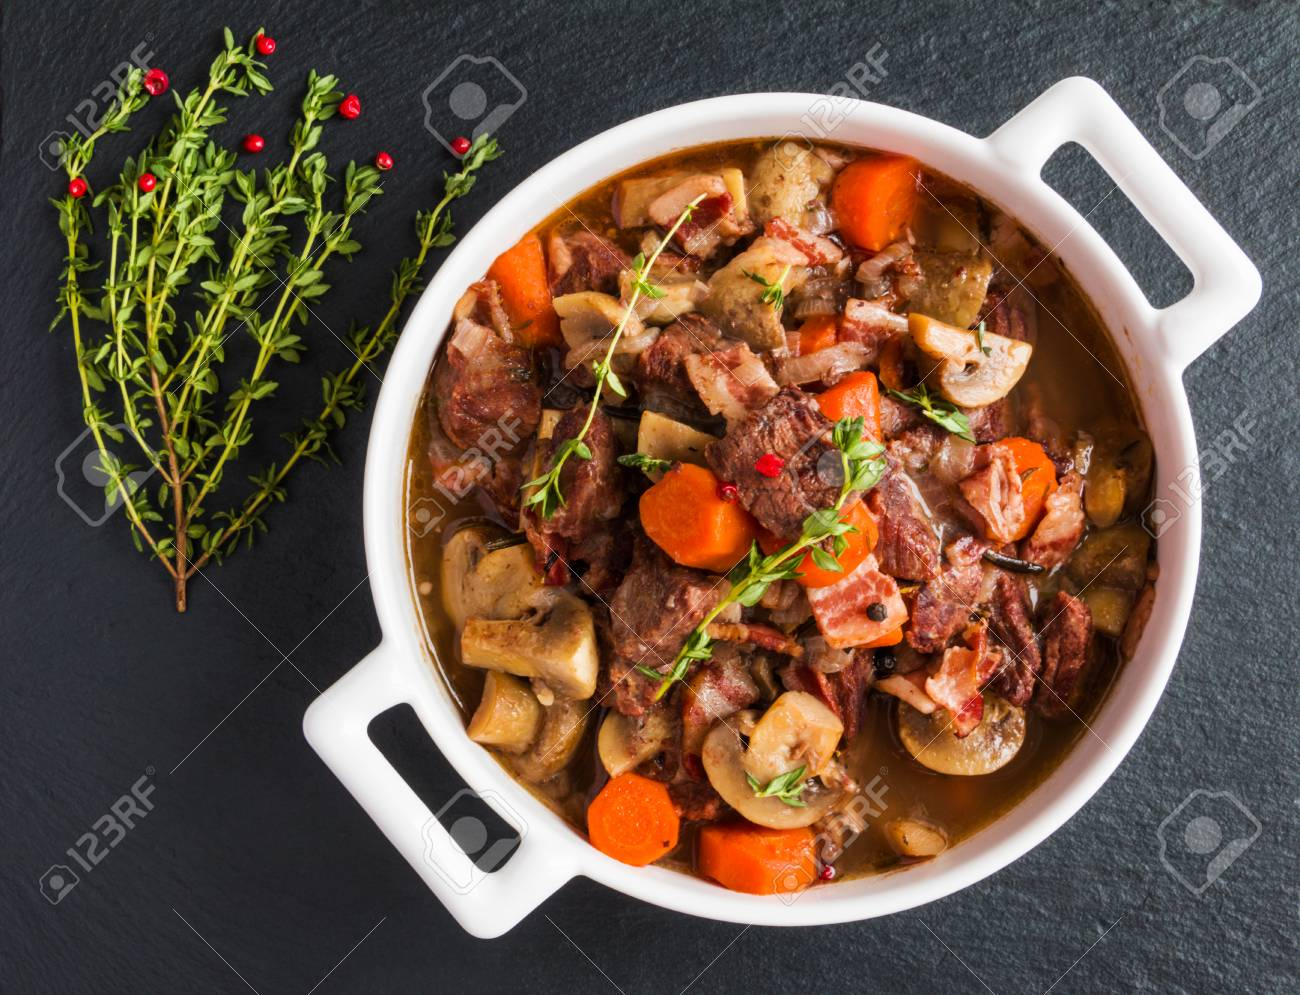 Beef Bourguignon in a casserole on black stone. Stewed with bacon, garlic, carrots, onions, mushrooms, red wine, fresh thyme and spices. Top view. - 66957018